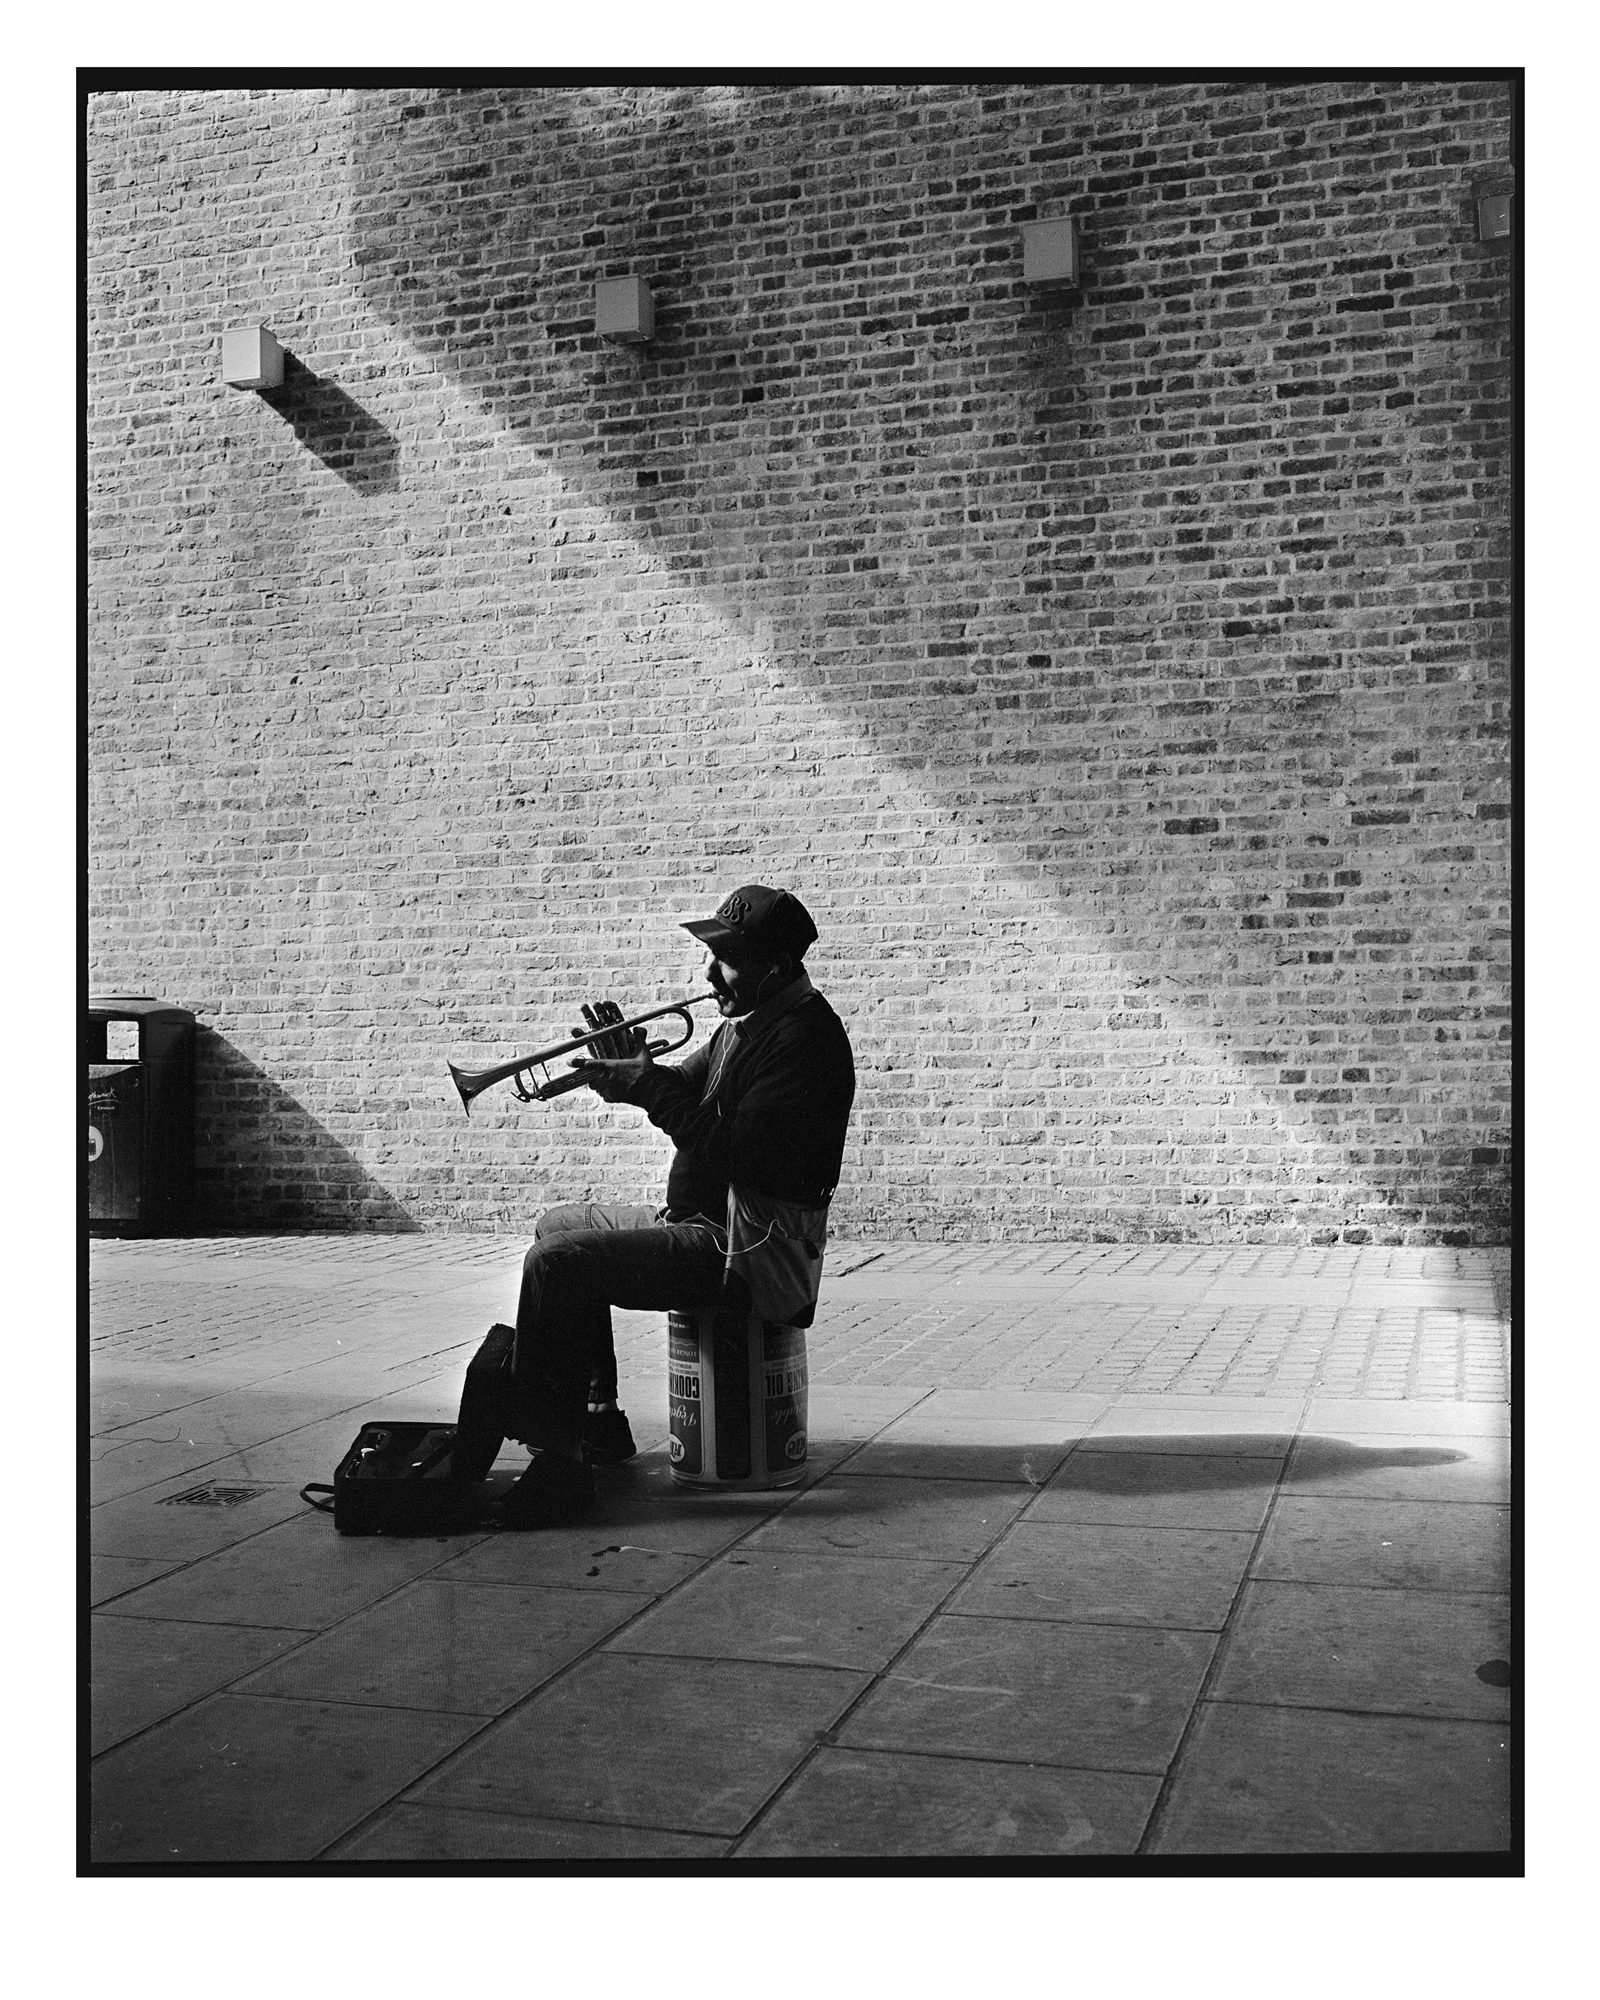 Street performer by Brett Hillyard on ILFORD black and white HP5+ Film